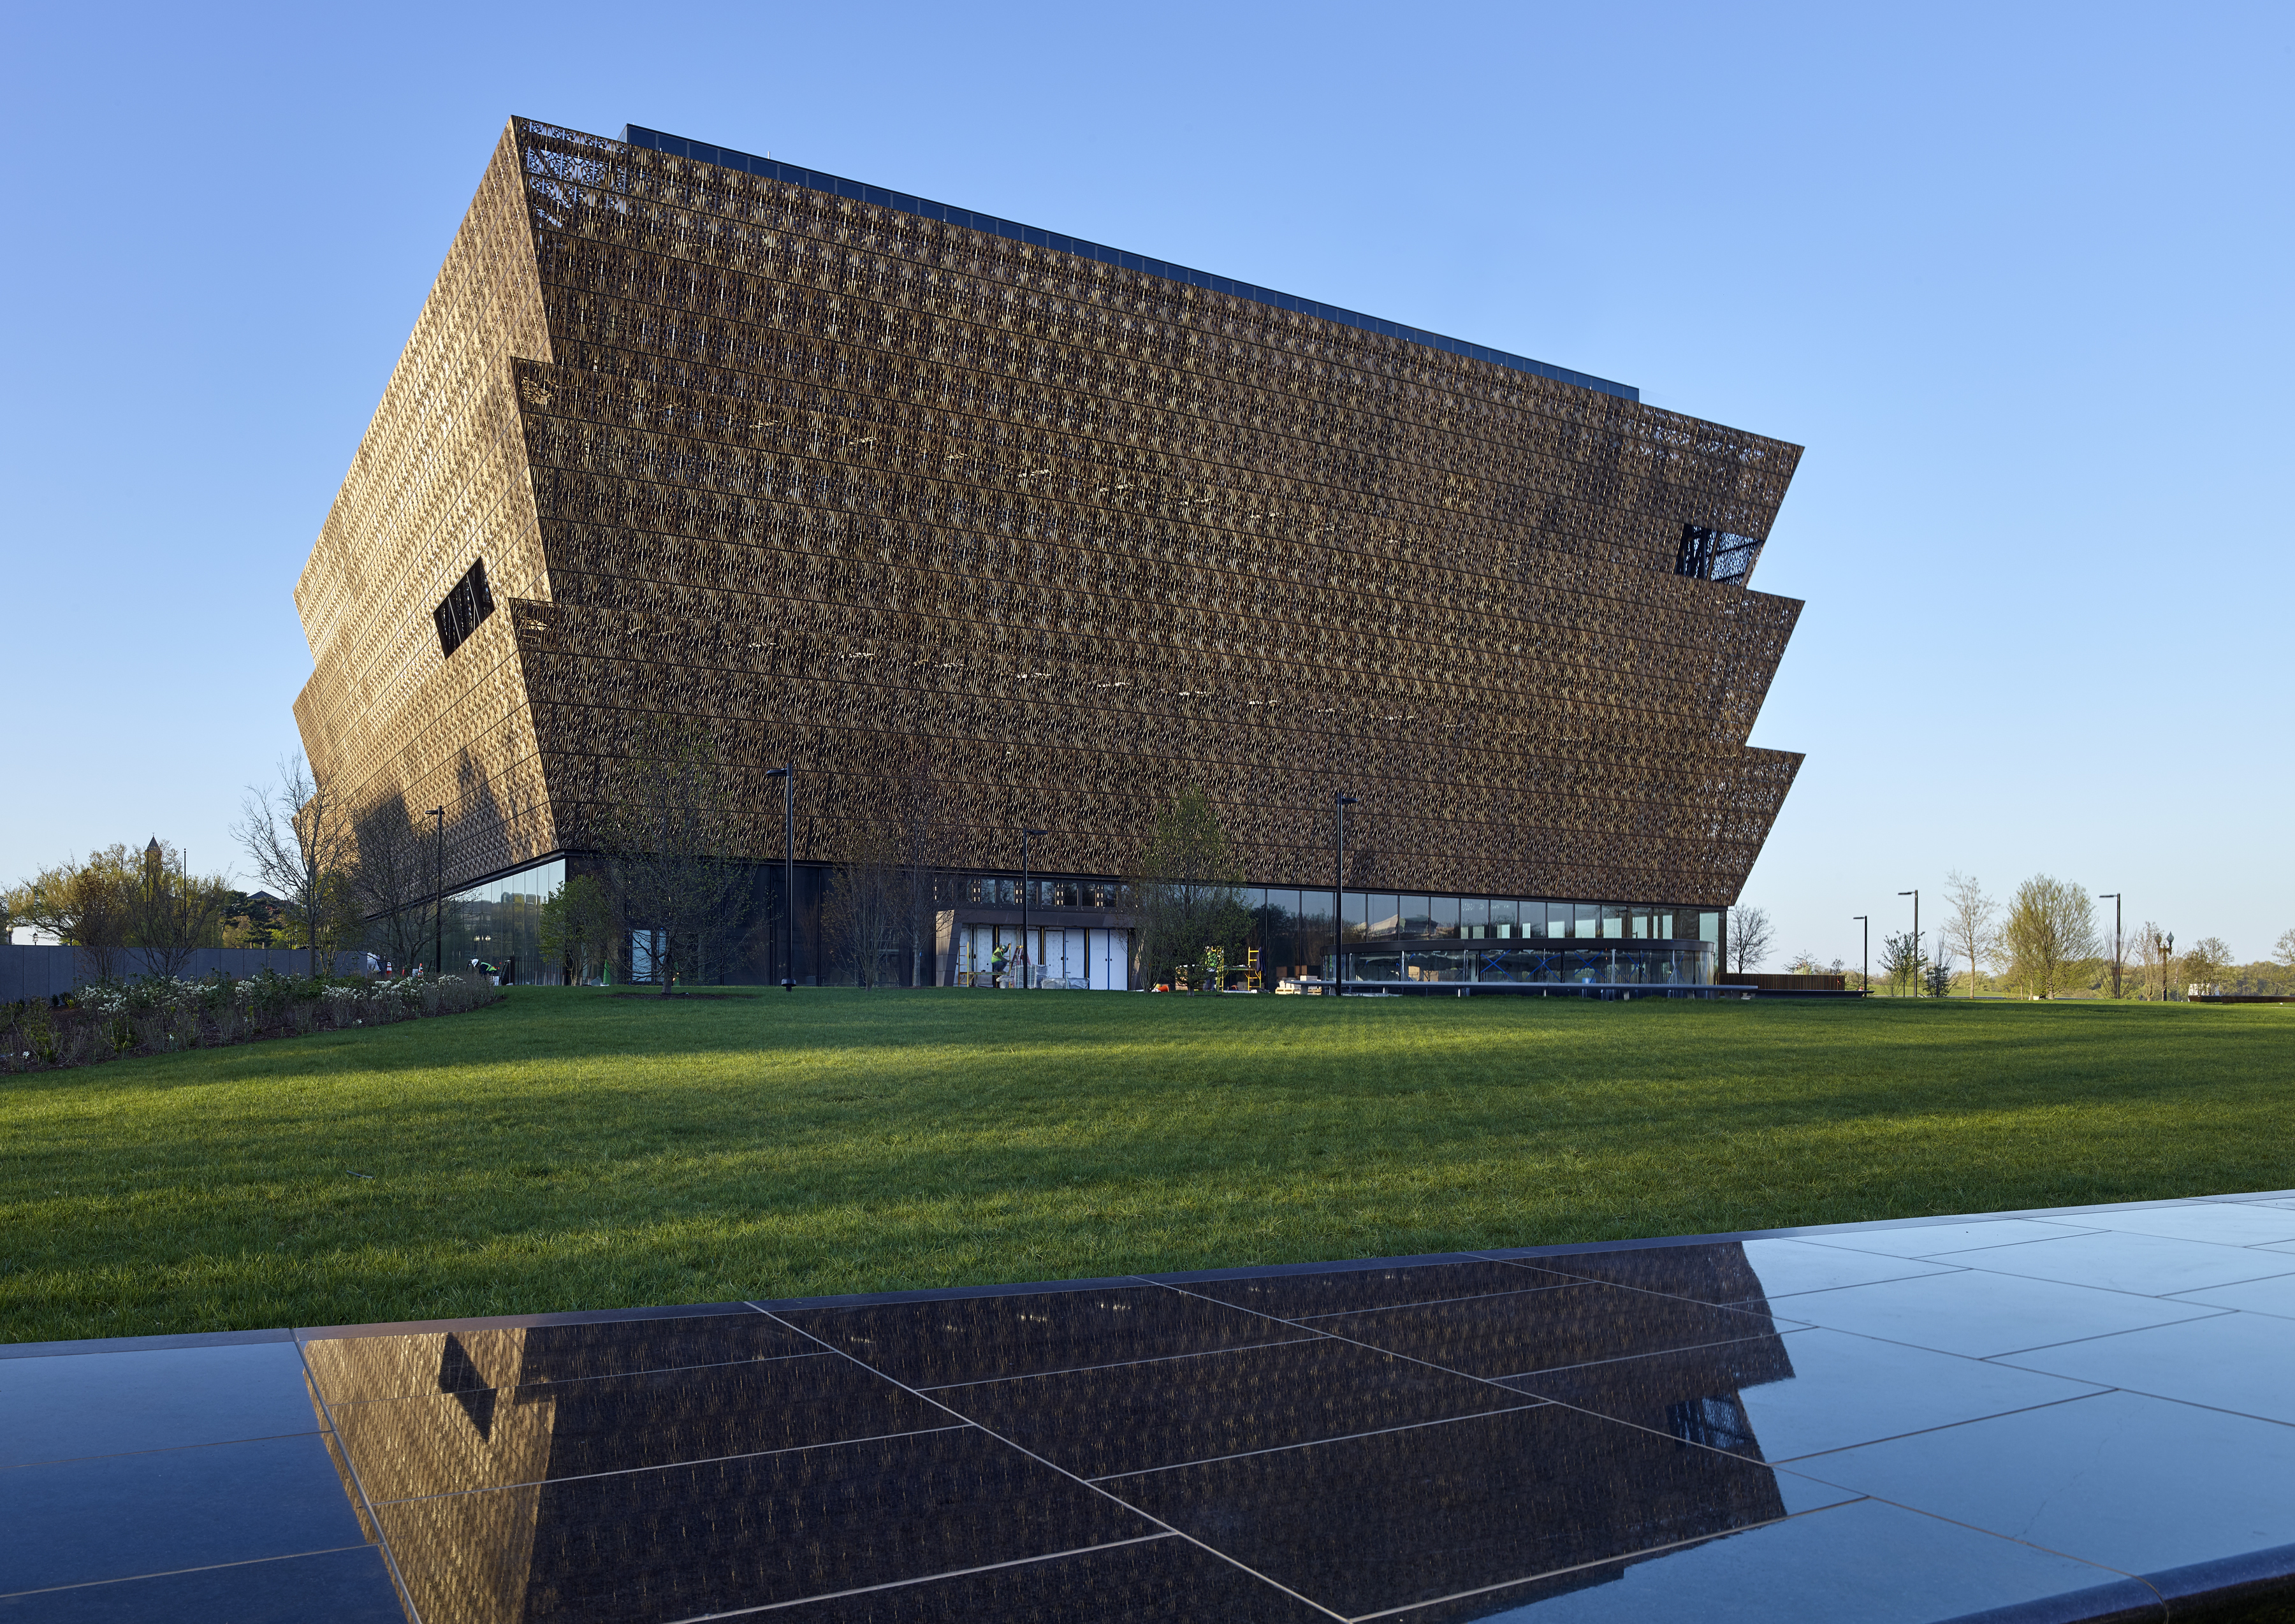 100 Years In The Making, Black History And Culture Museum Gets Ready For Reveal